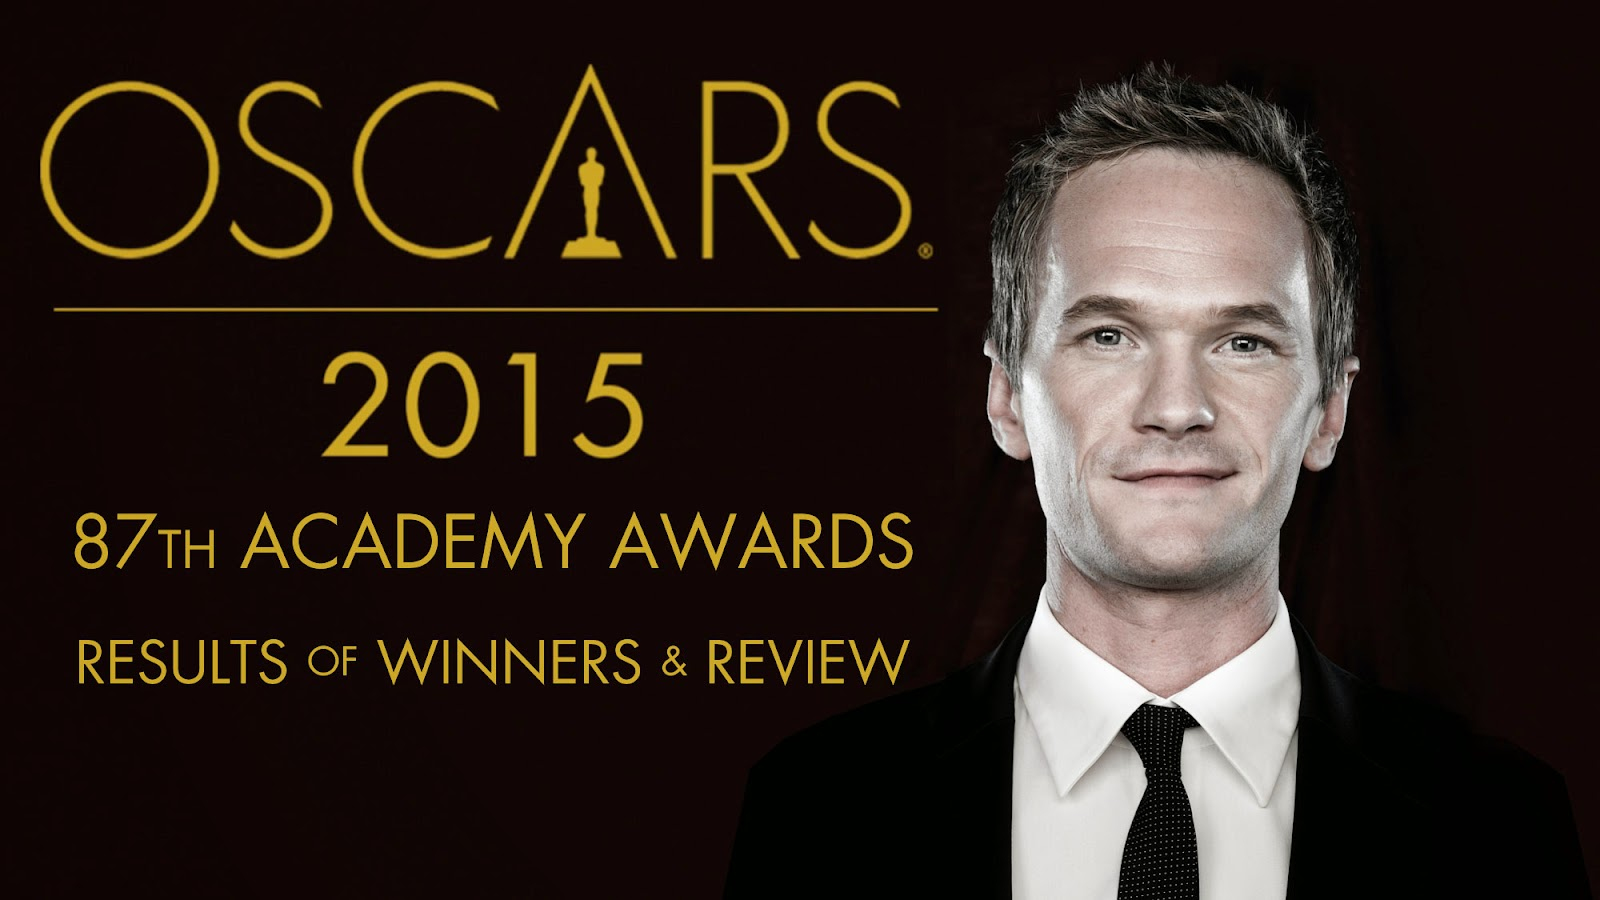 Review of Oscars winners 87th Academy Awards results podcast